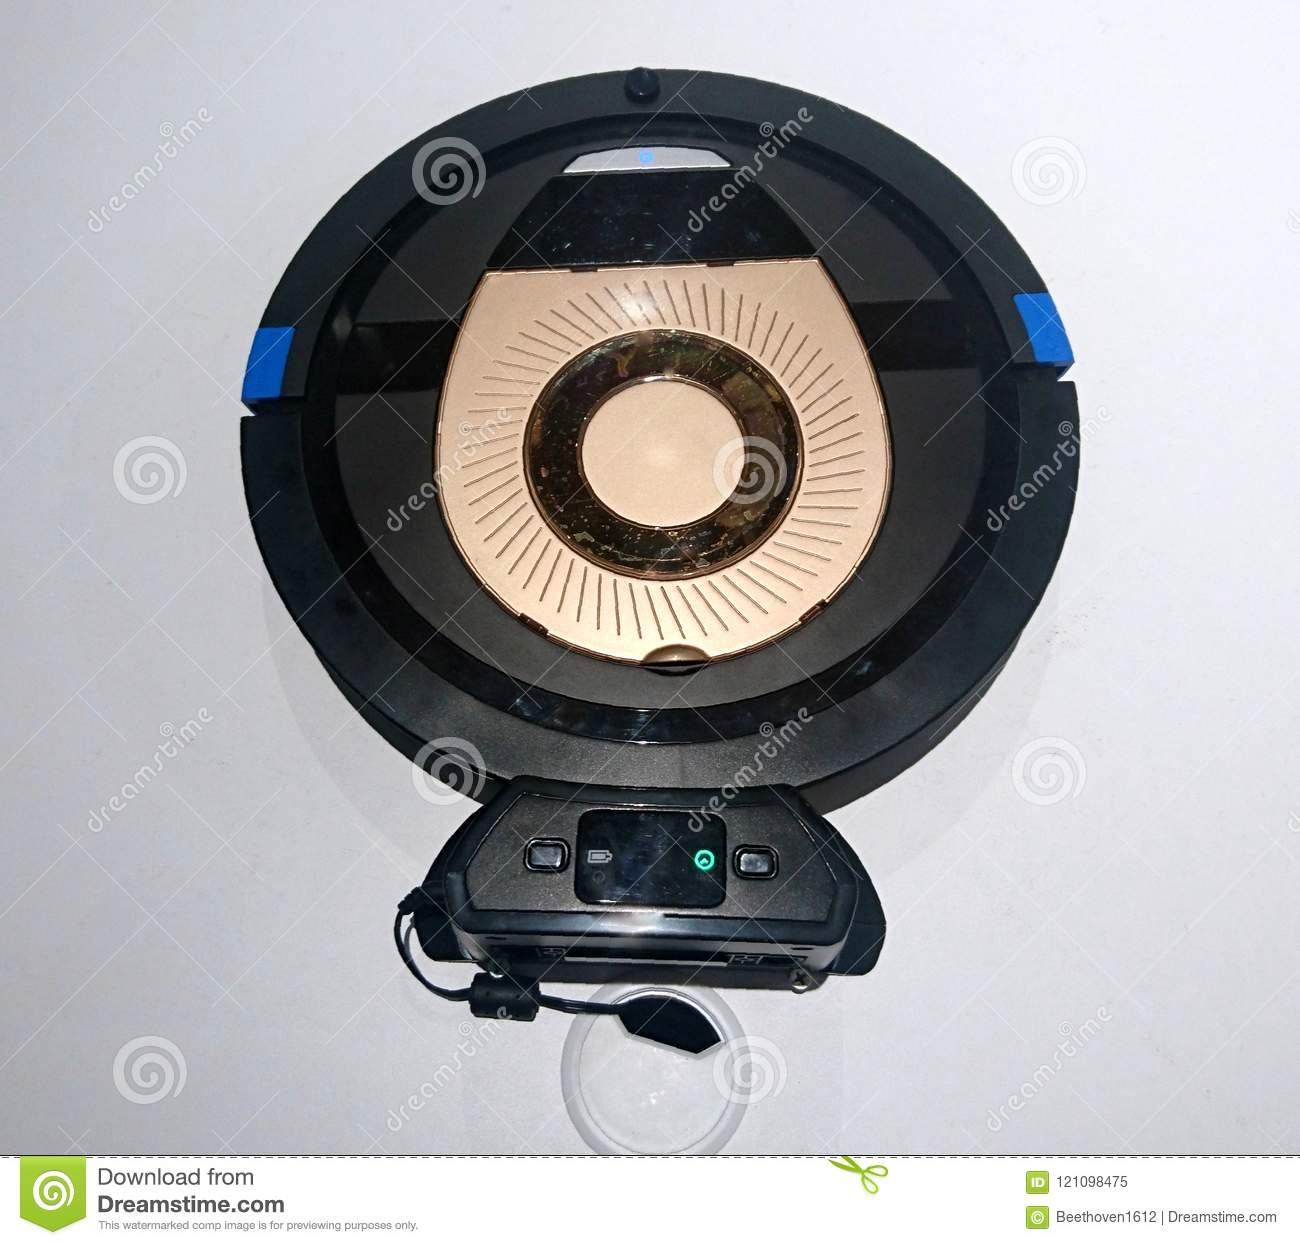 Robot Vacuum Cleaner stock image  Image of programming - 121098475